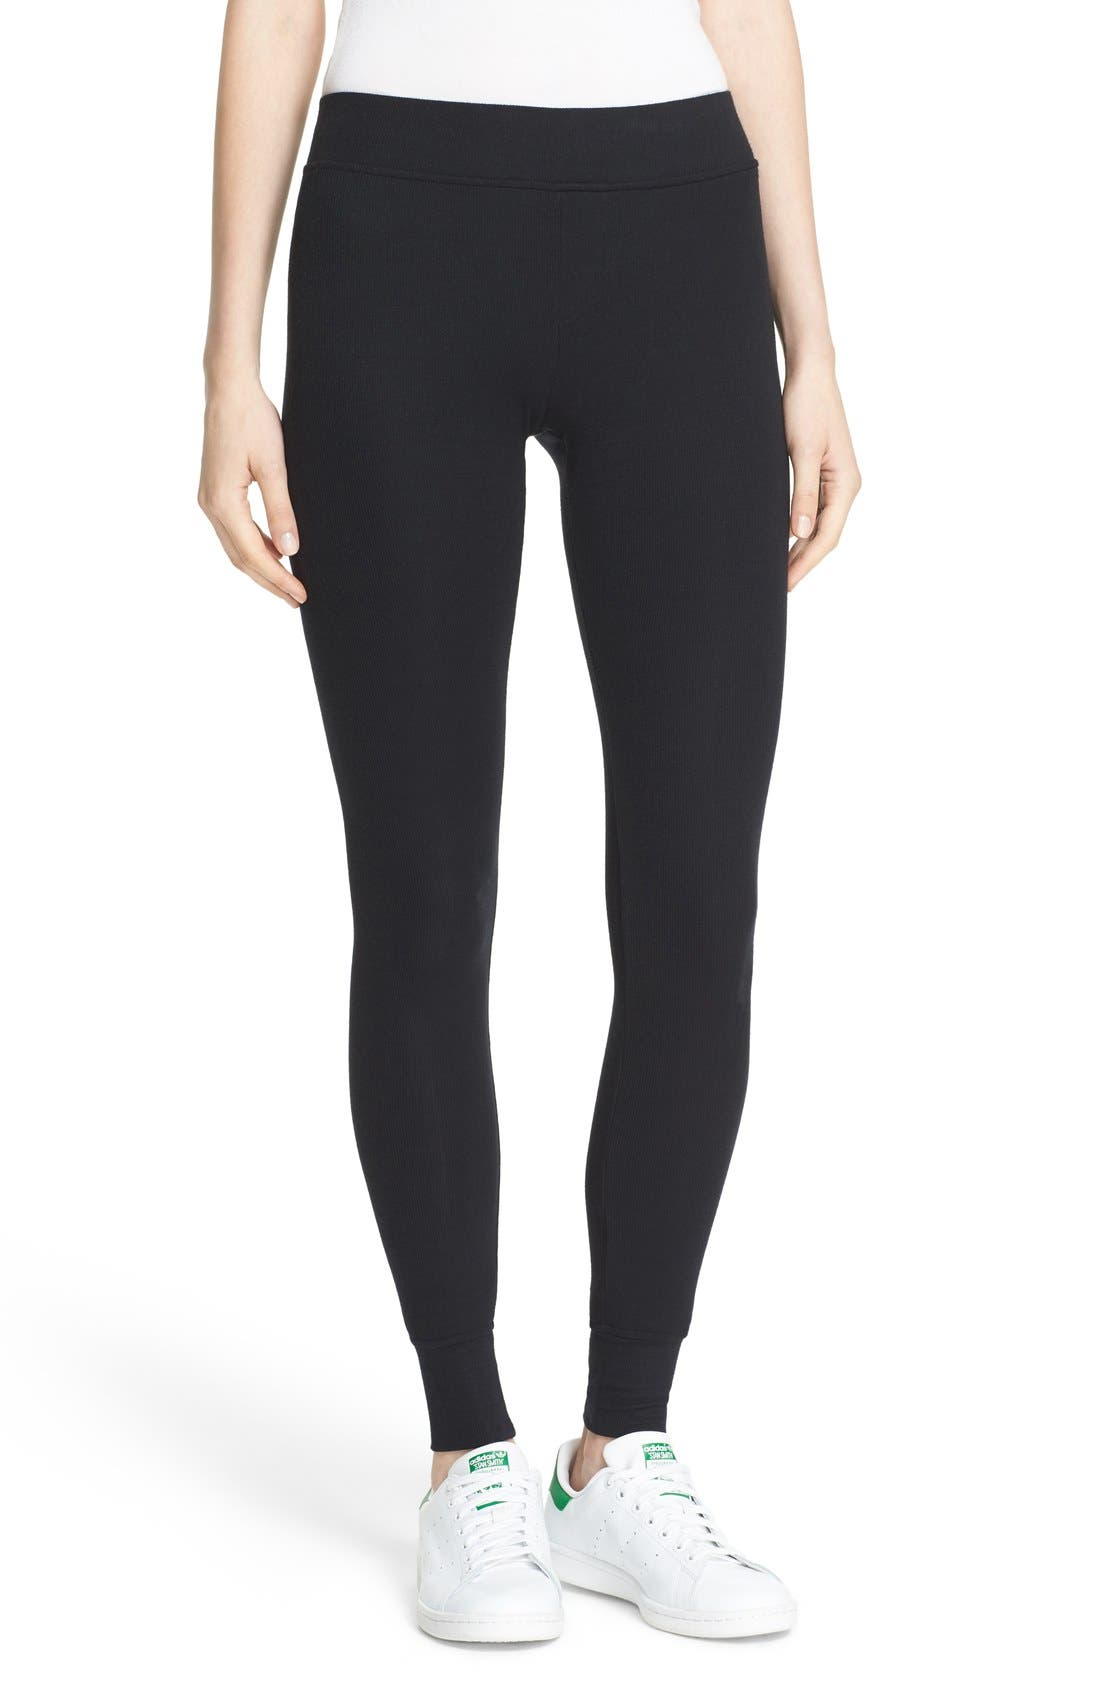 Alternate Image 1 Selected - ATM Anthony Thomas Melillo Rib Knit Yoga Leggings